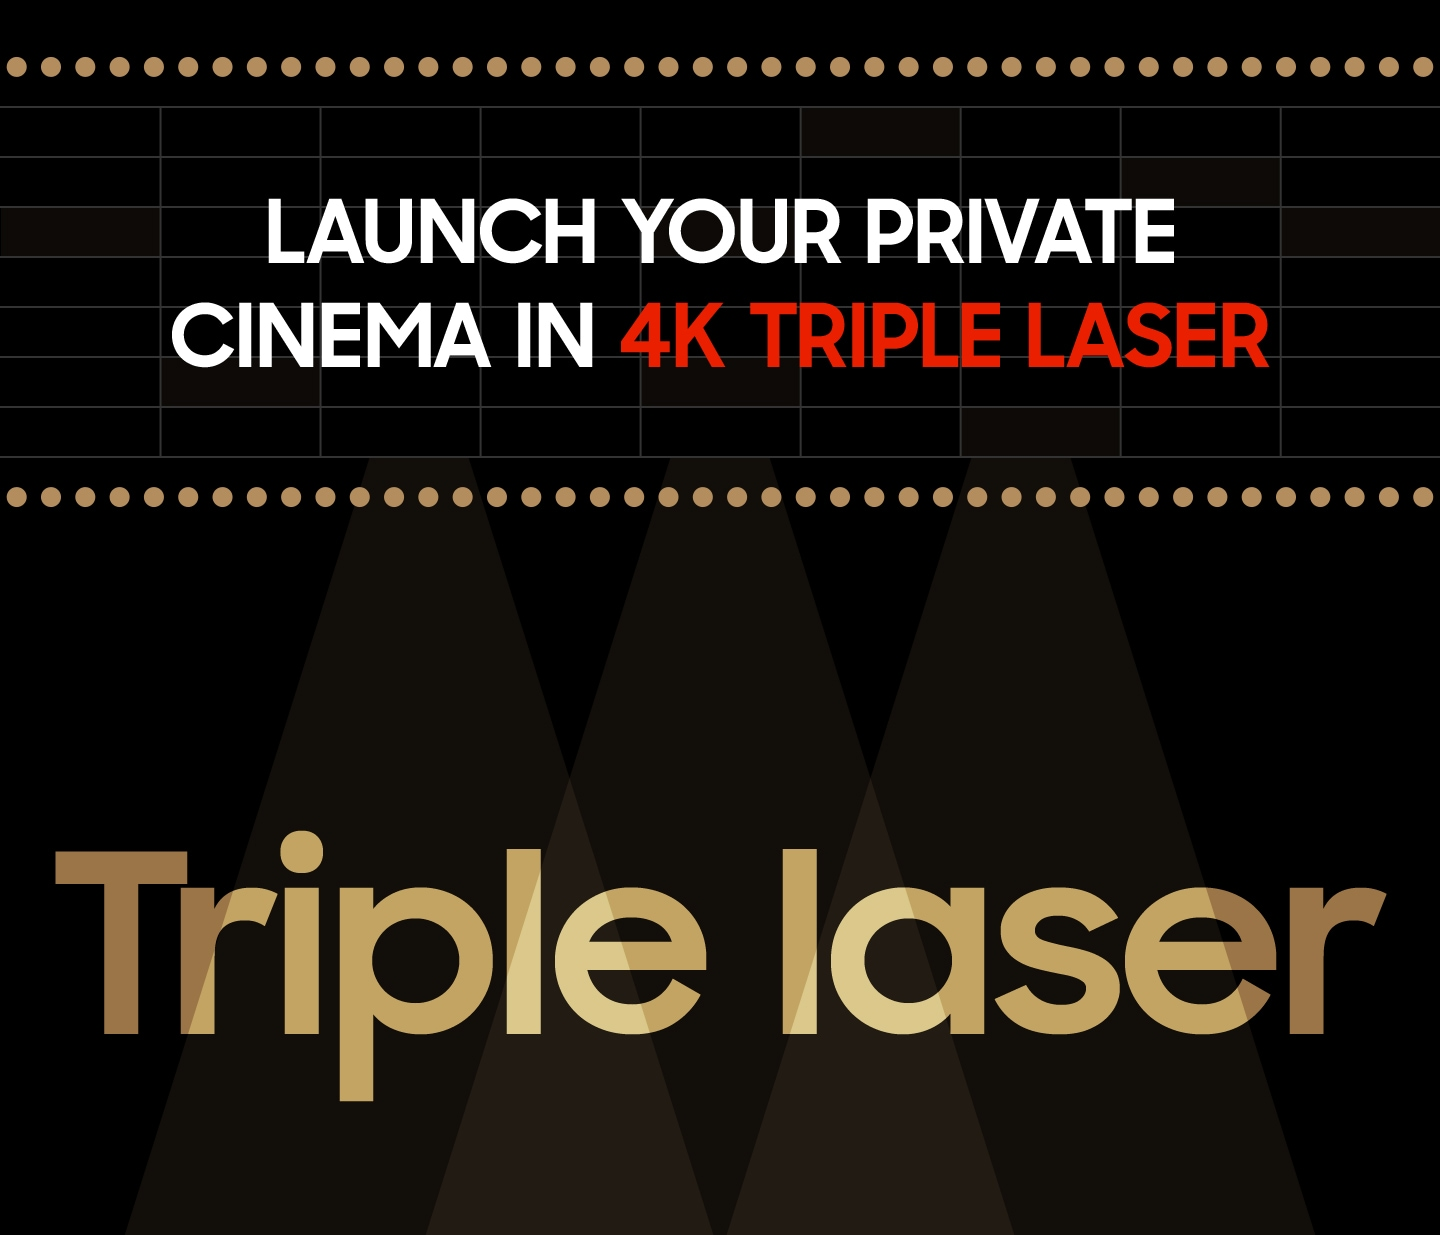 Launch your private cinema